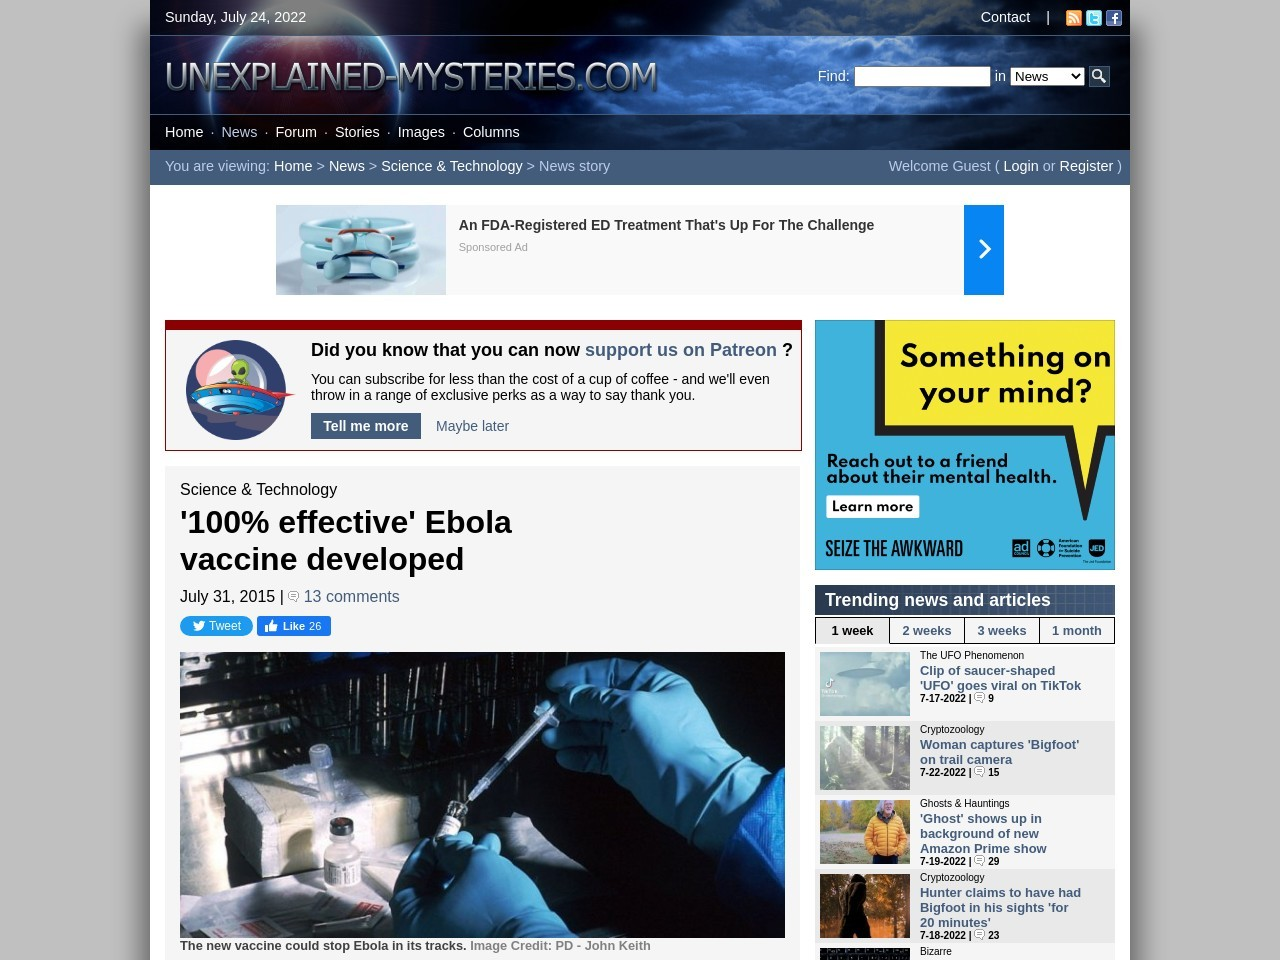 '100% effective' Ebola vaccine developed